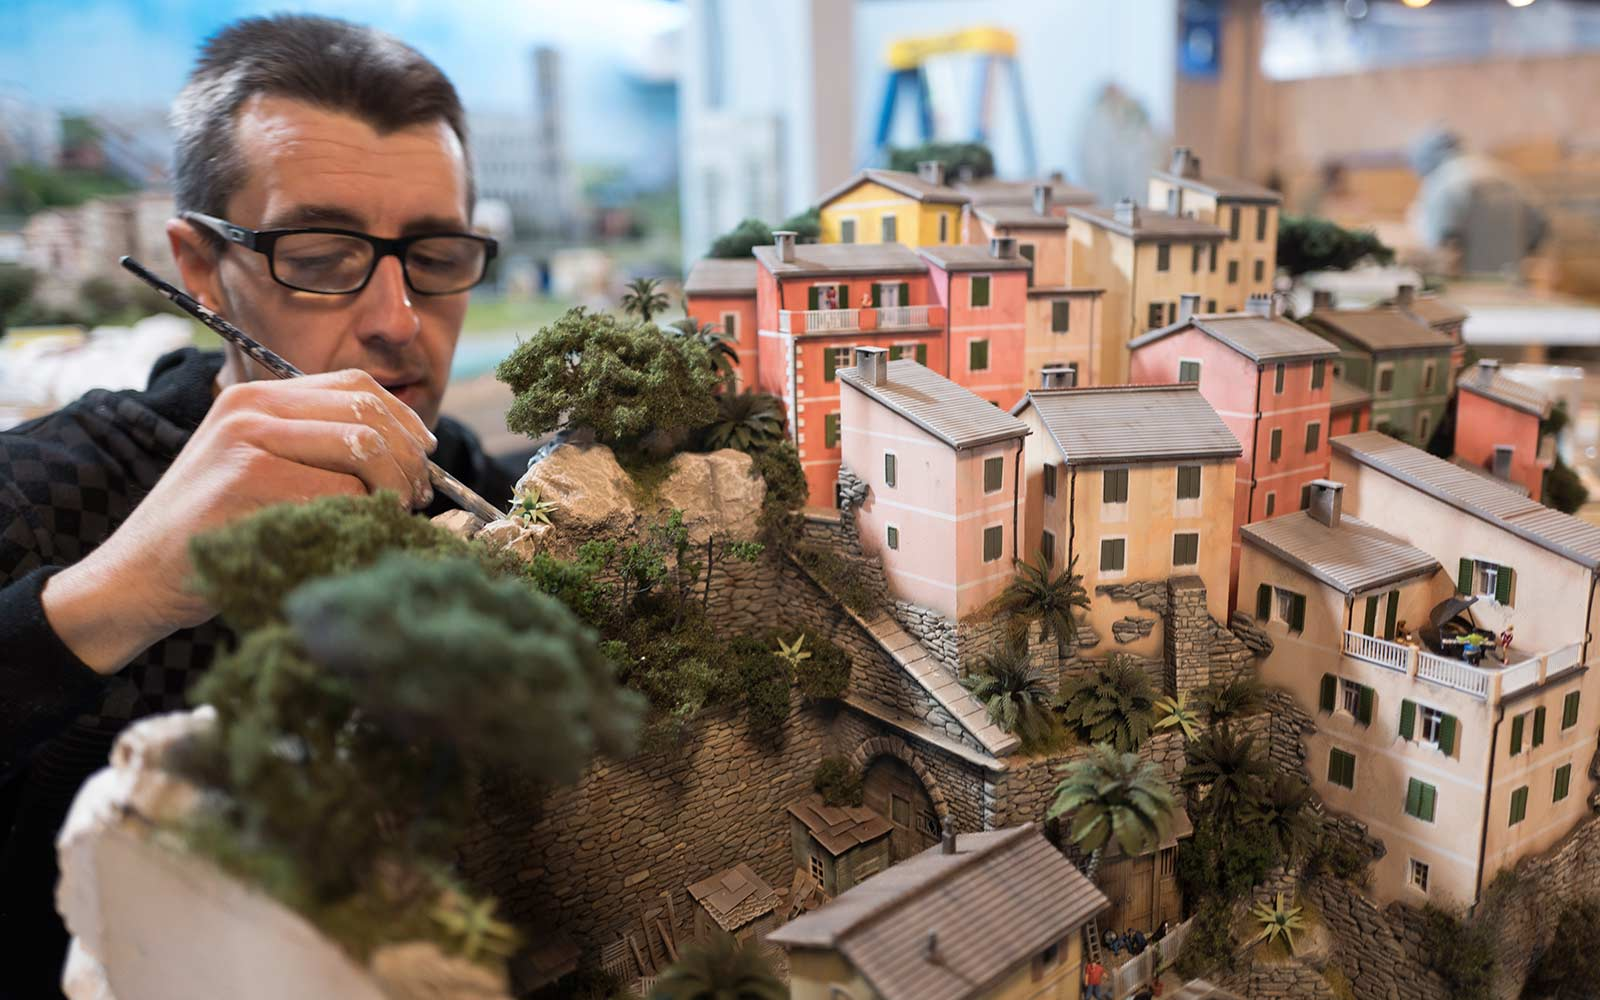 There's an Entire Miniature World That Fills This New York City Block